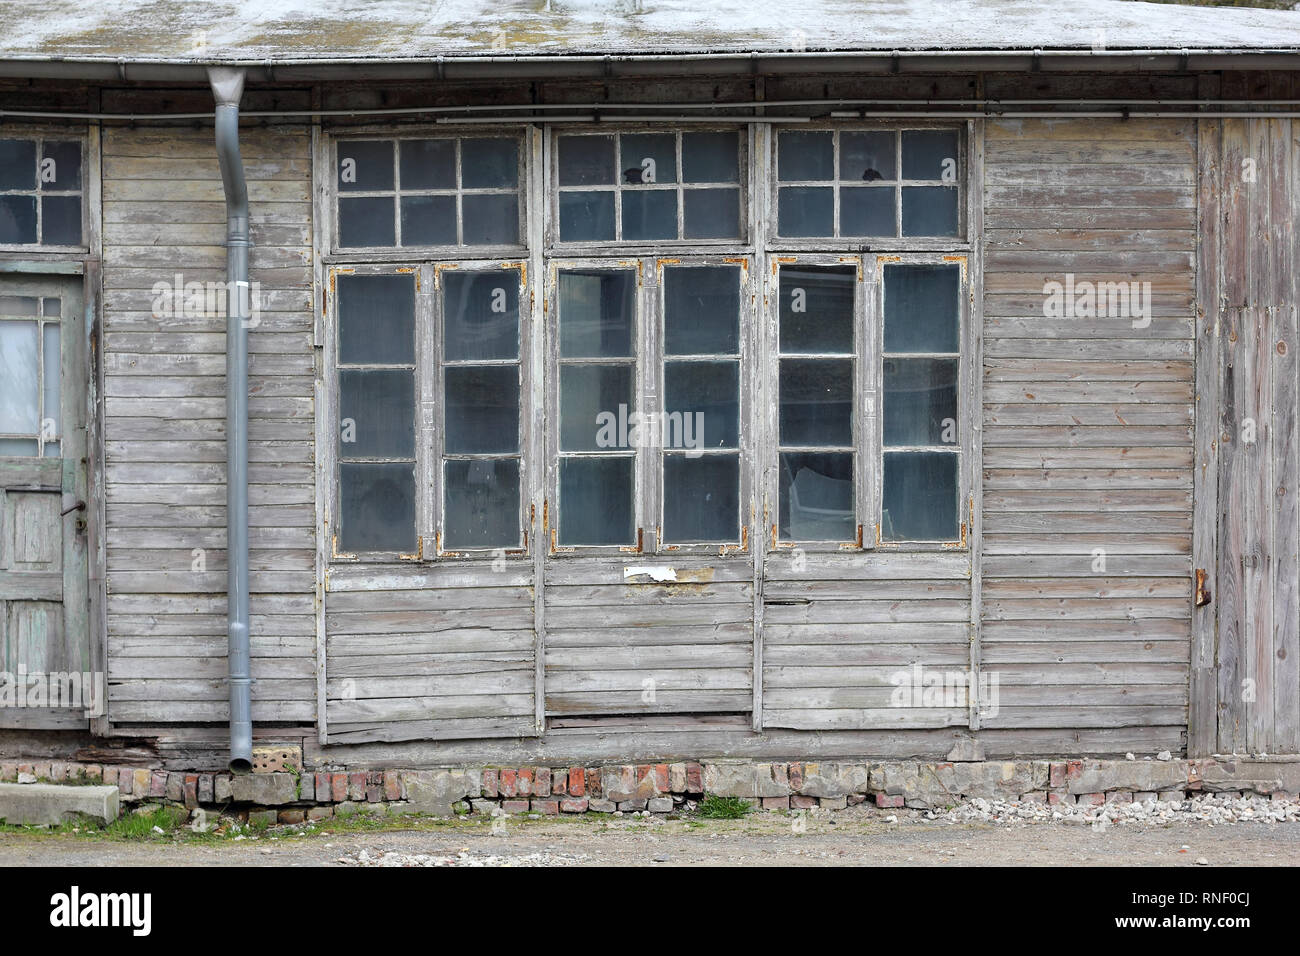 An old wooden barrack - Stock Image